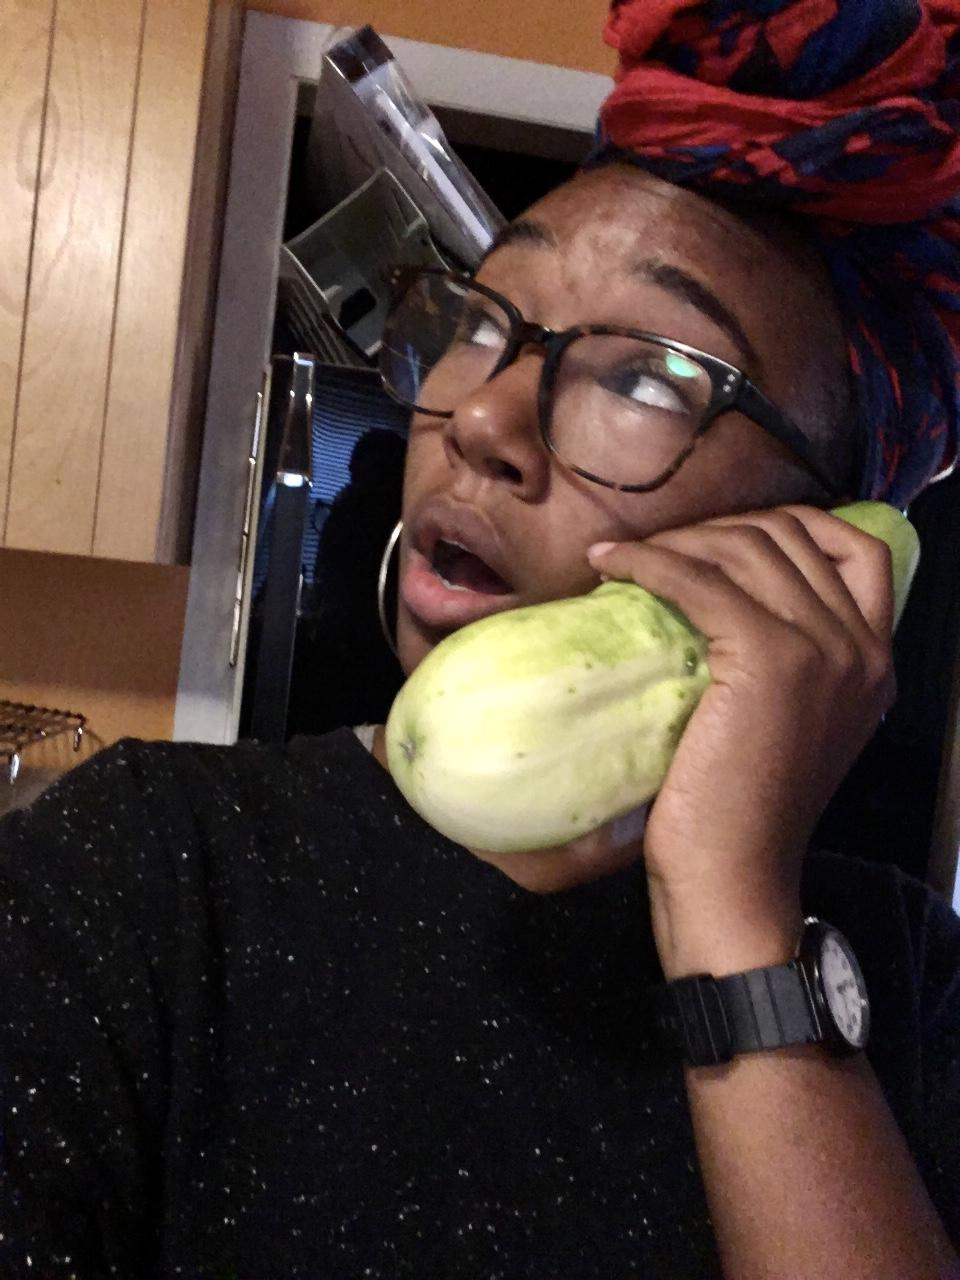 Black woman playfully holding large pale green cucumber to her ear like a phone!